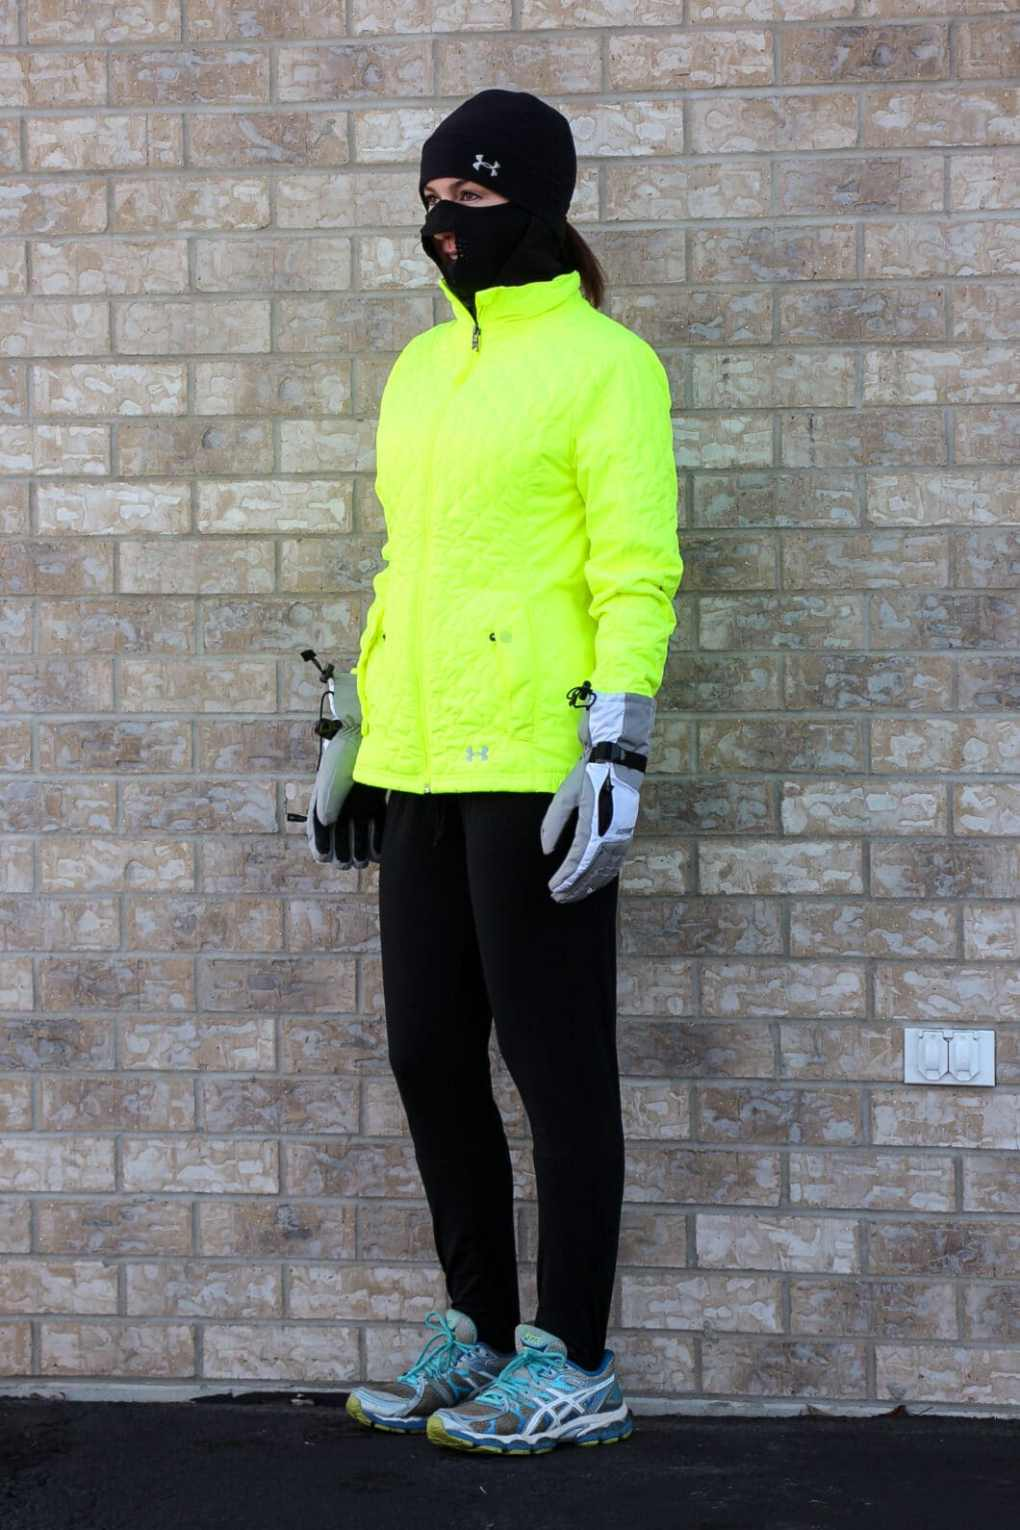 subzero weather running outfit